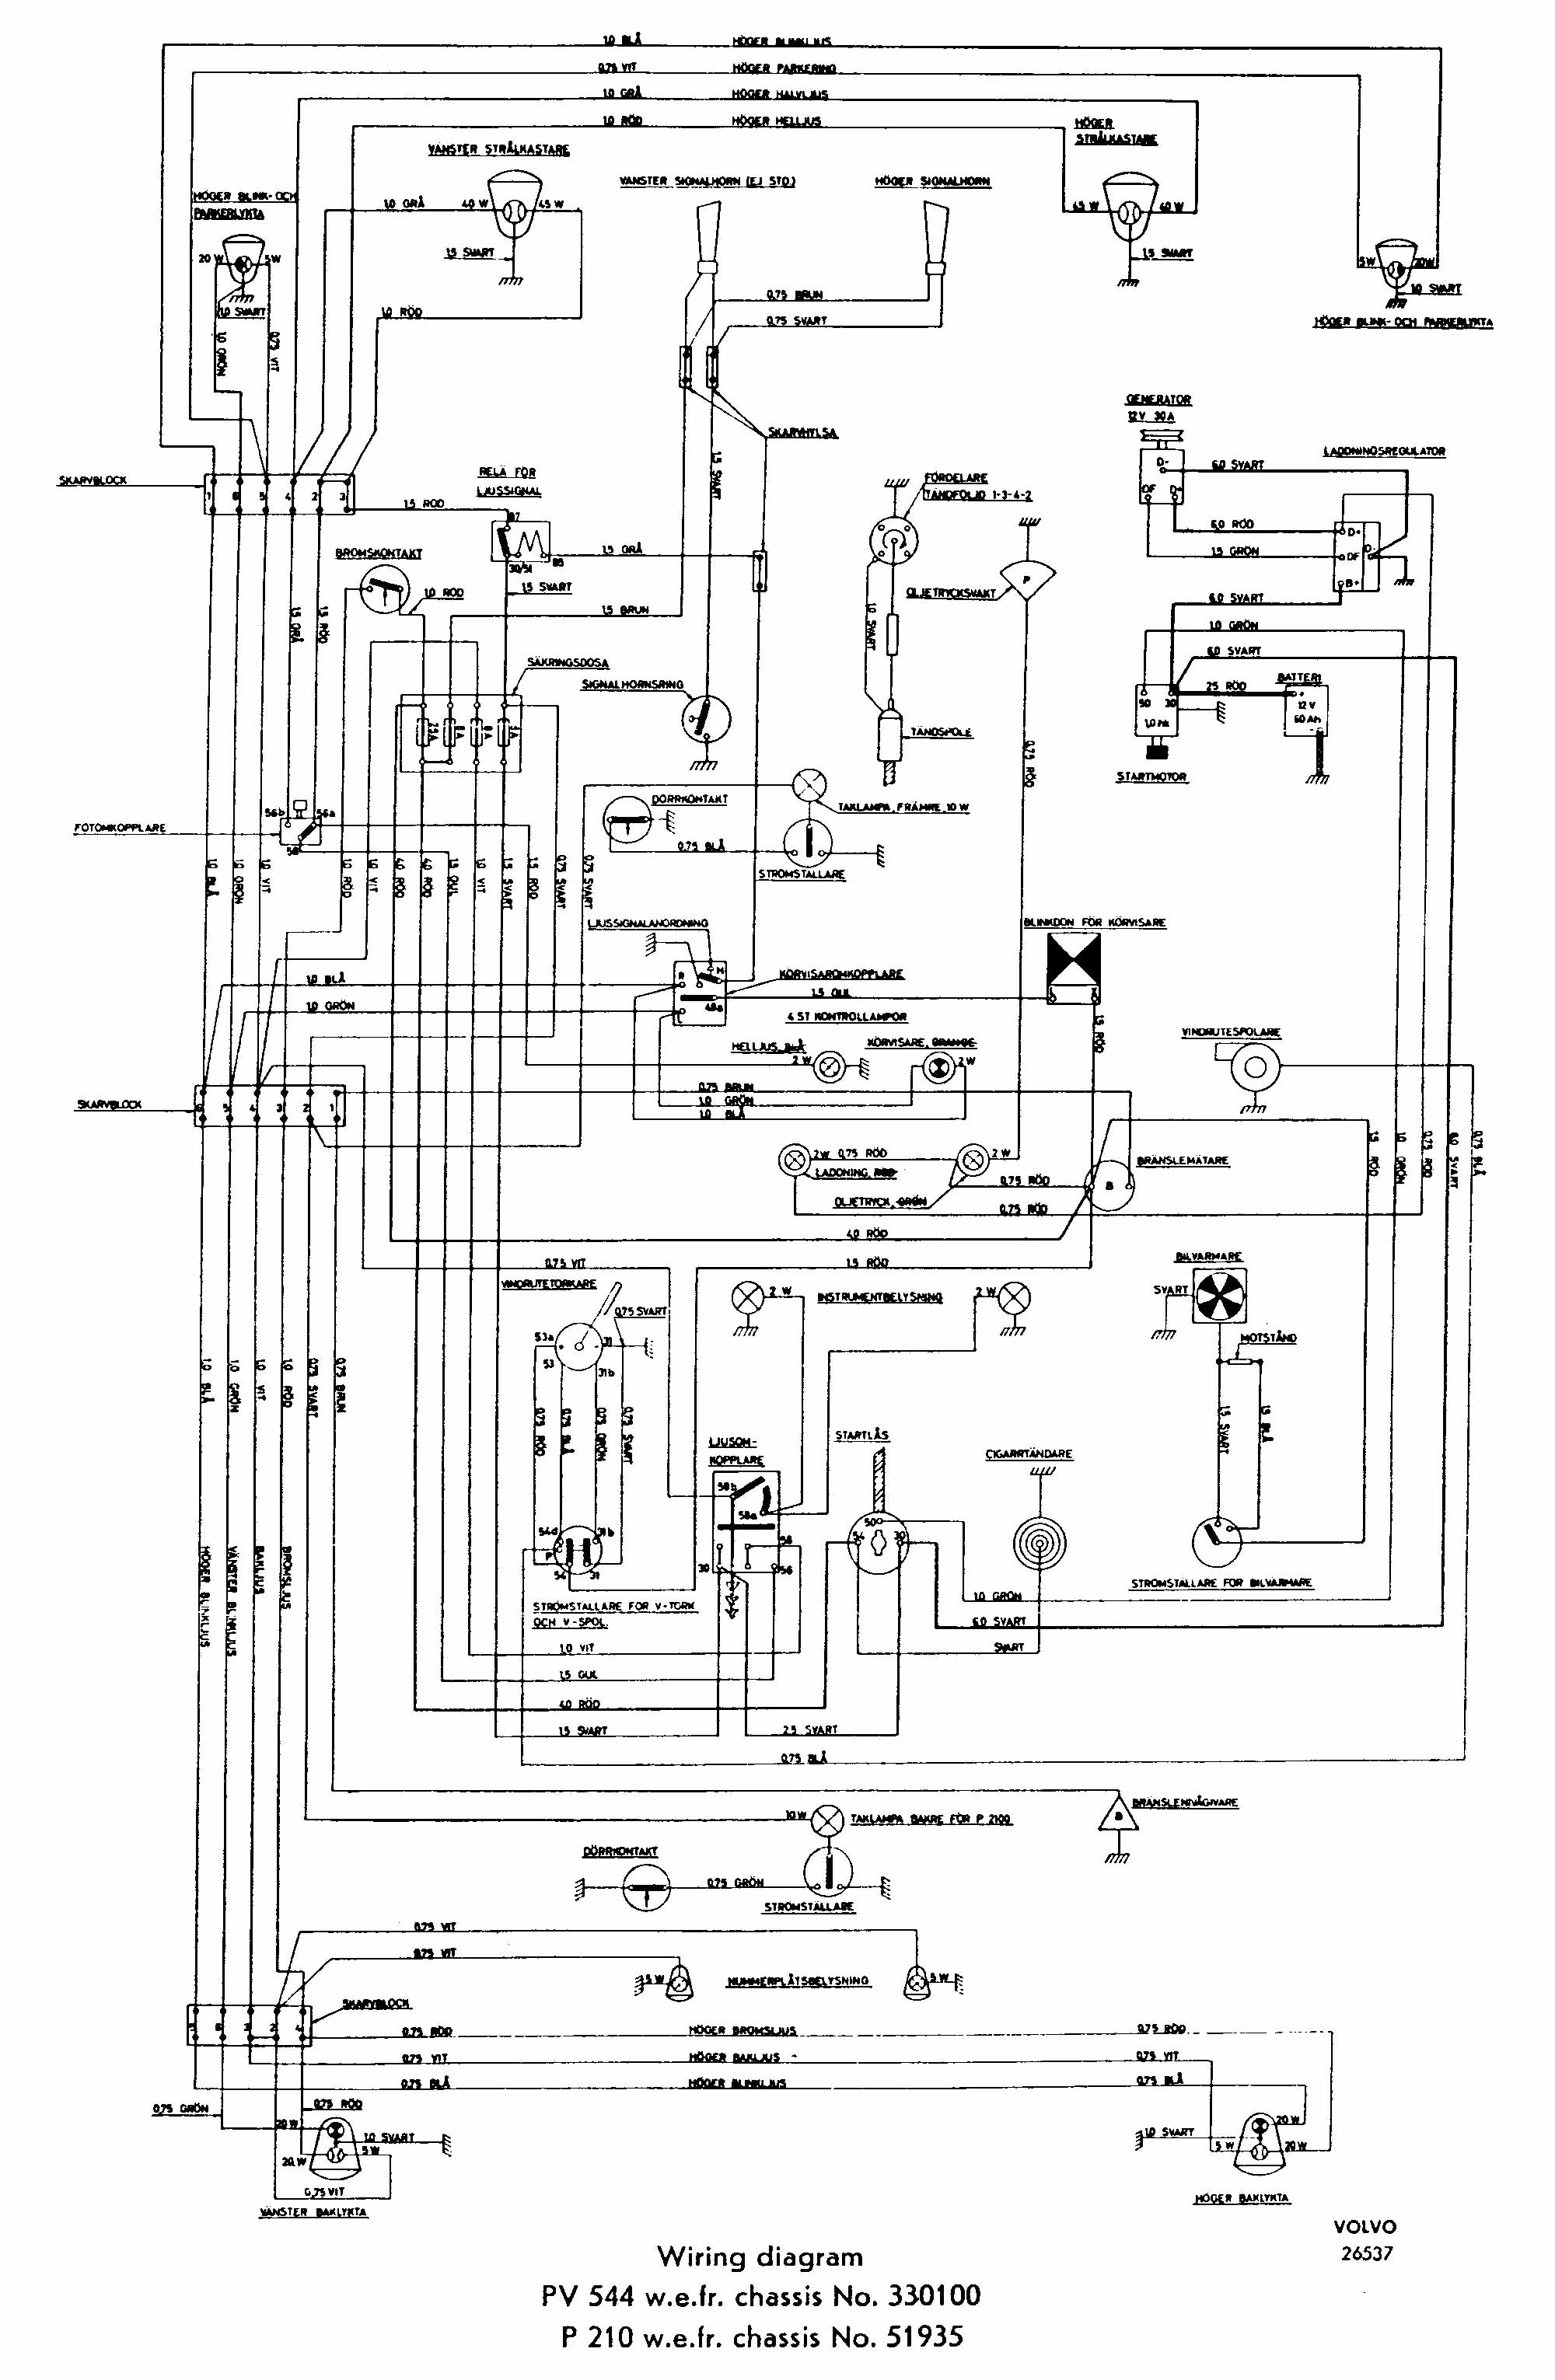 544 Wiring Diagram sw em 544 wiper info GM LS Wiring Diagram at gsmx.co